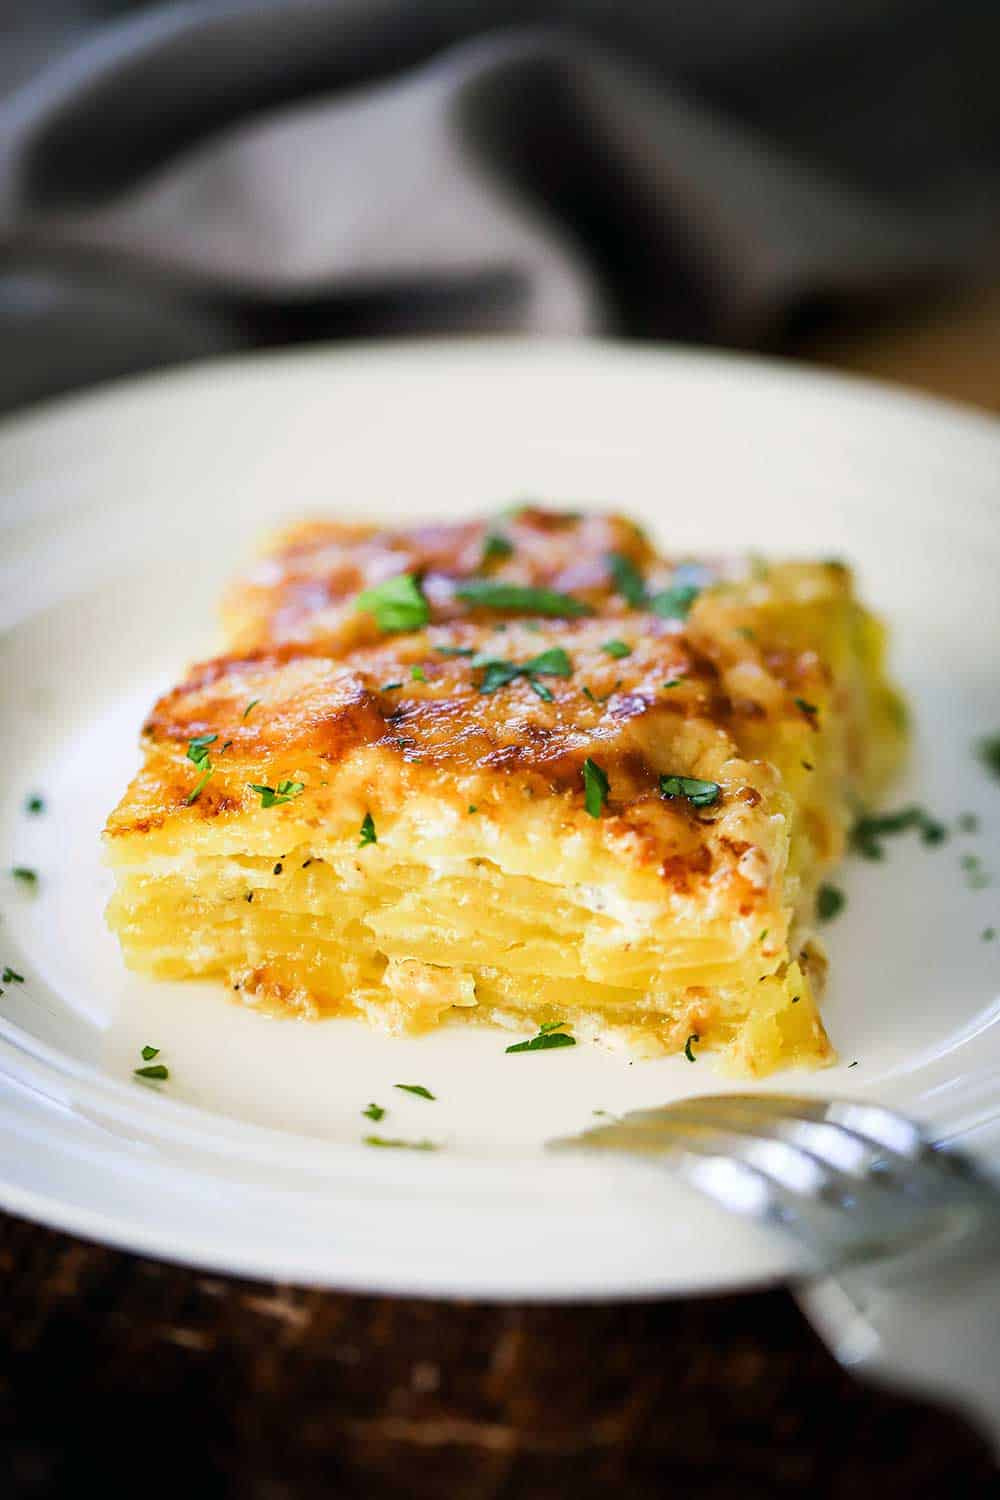 A square serving of potatoes dauphinoise on a white plate garnished with chopped parsley.